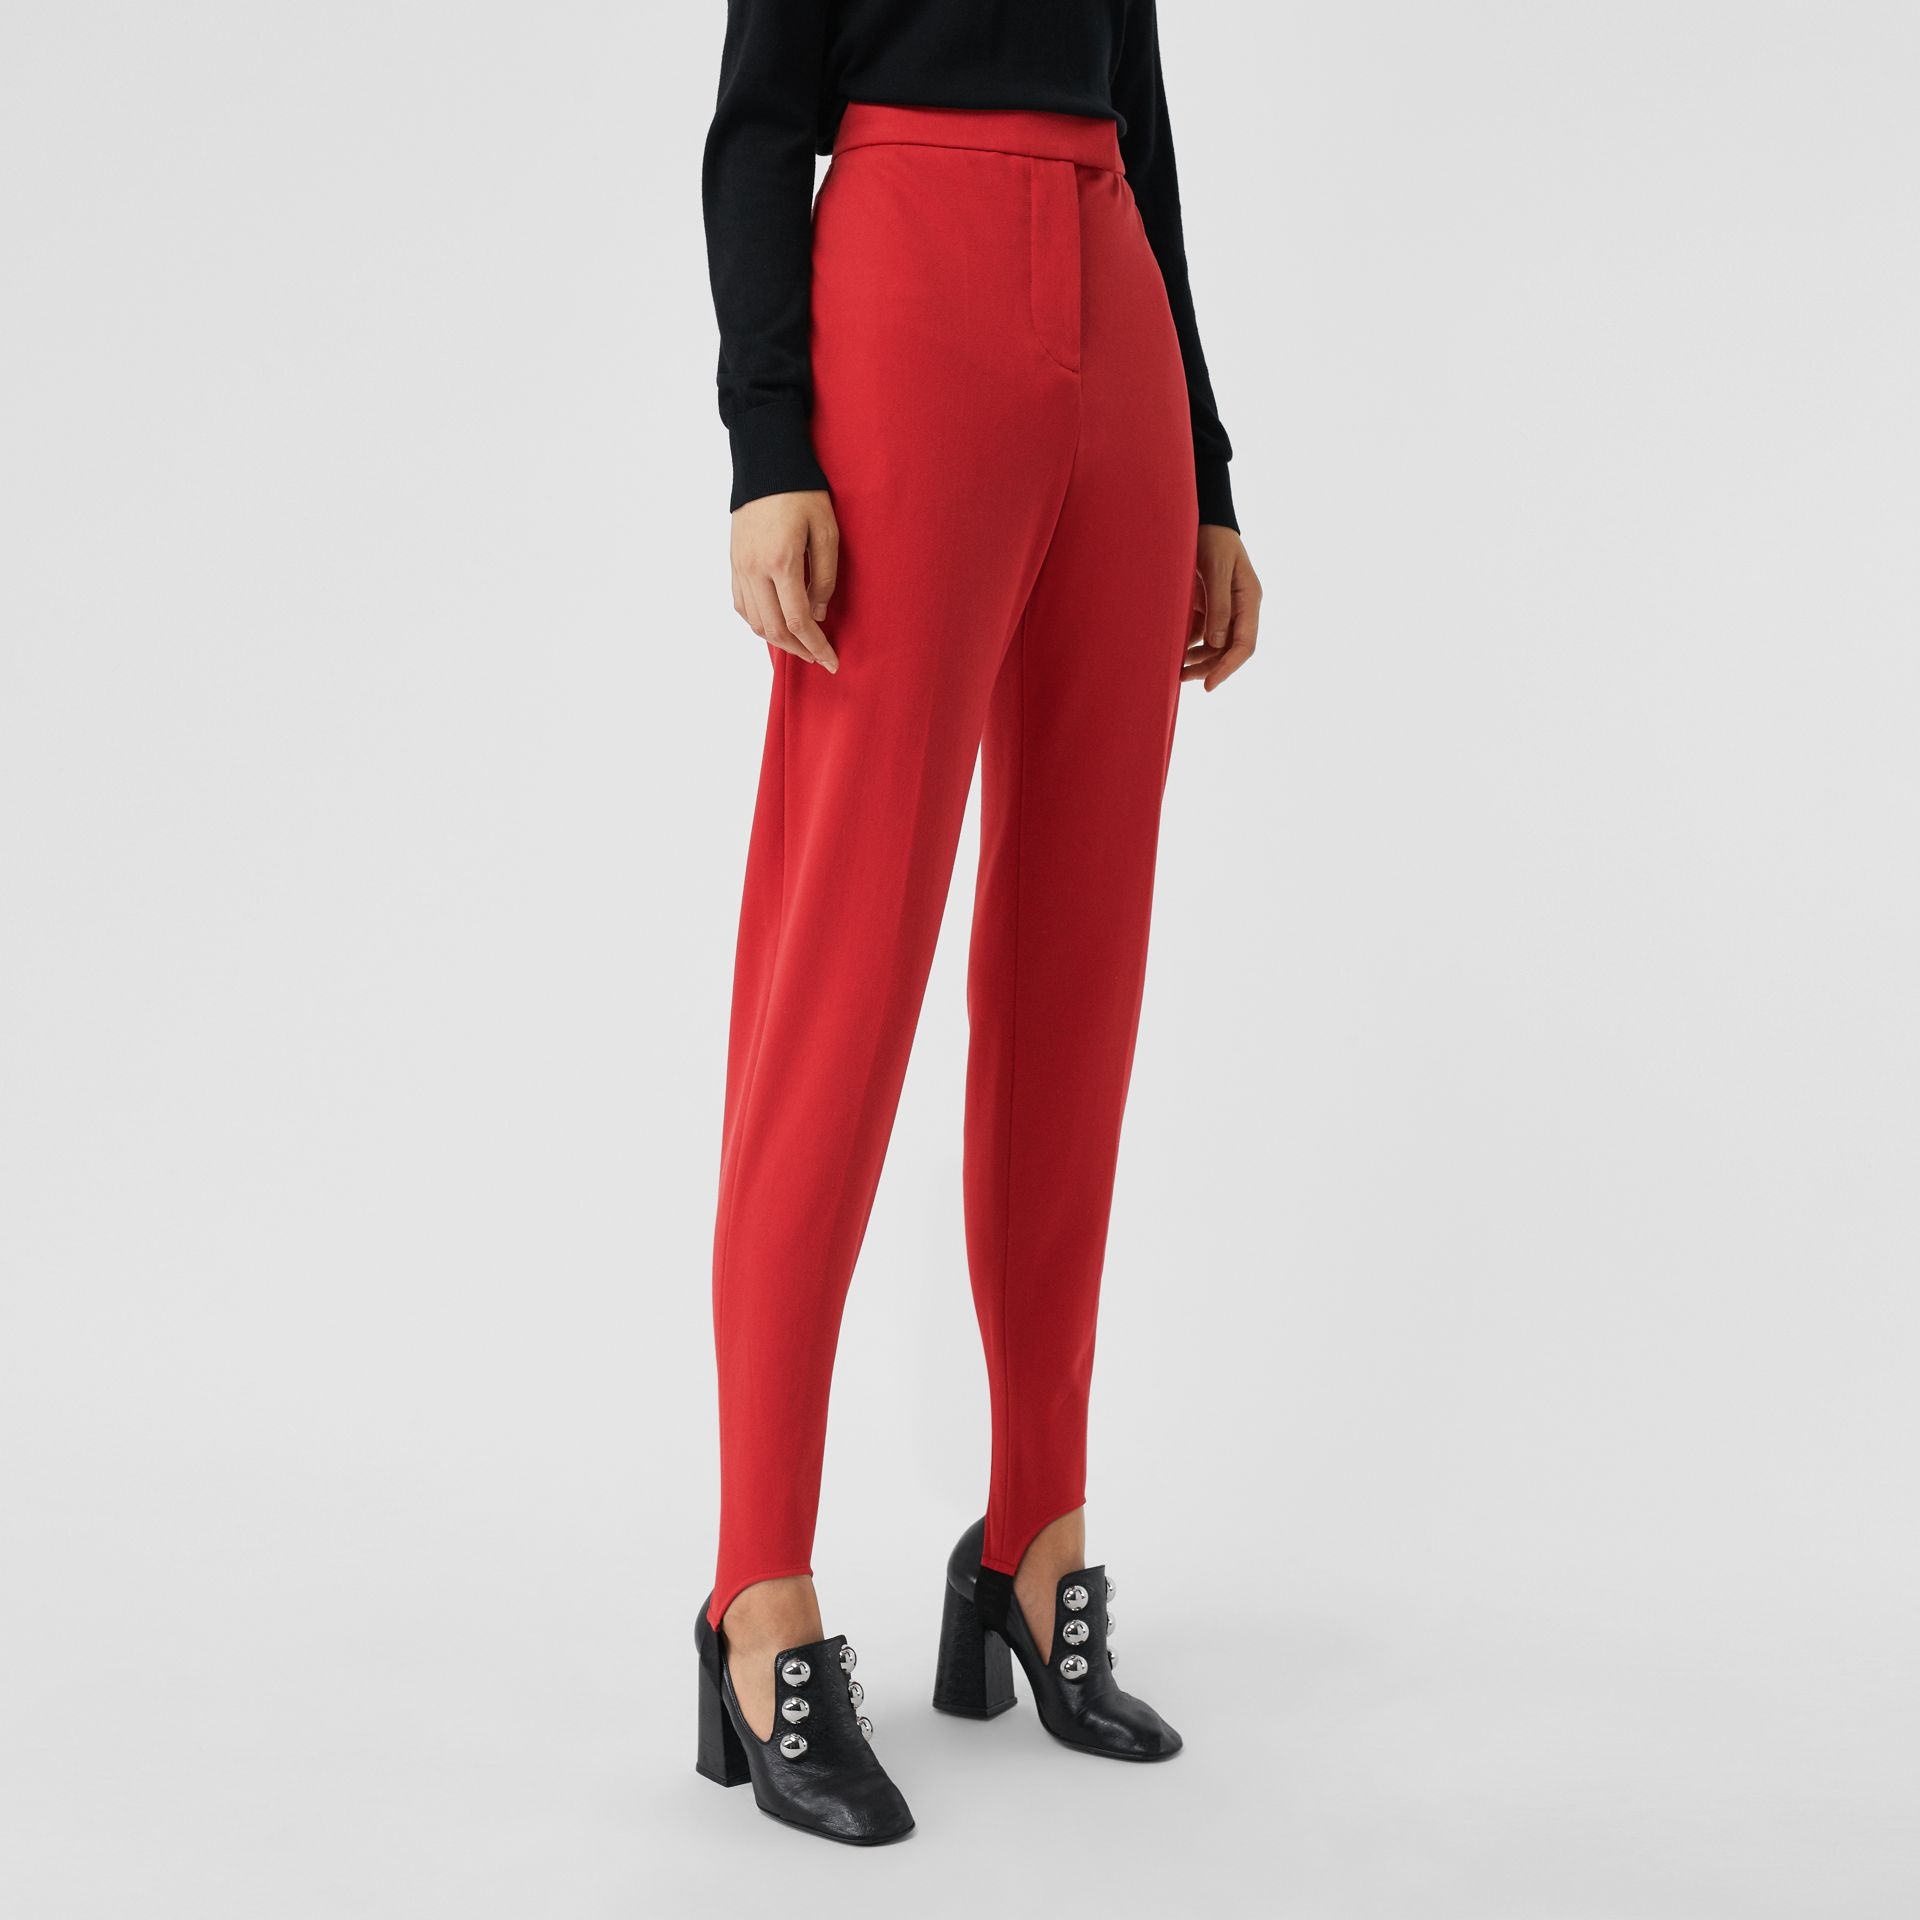 Cotton Blend Tailored Jodhpurs in Bright Red - Women | Burberry - gallery image 5